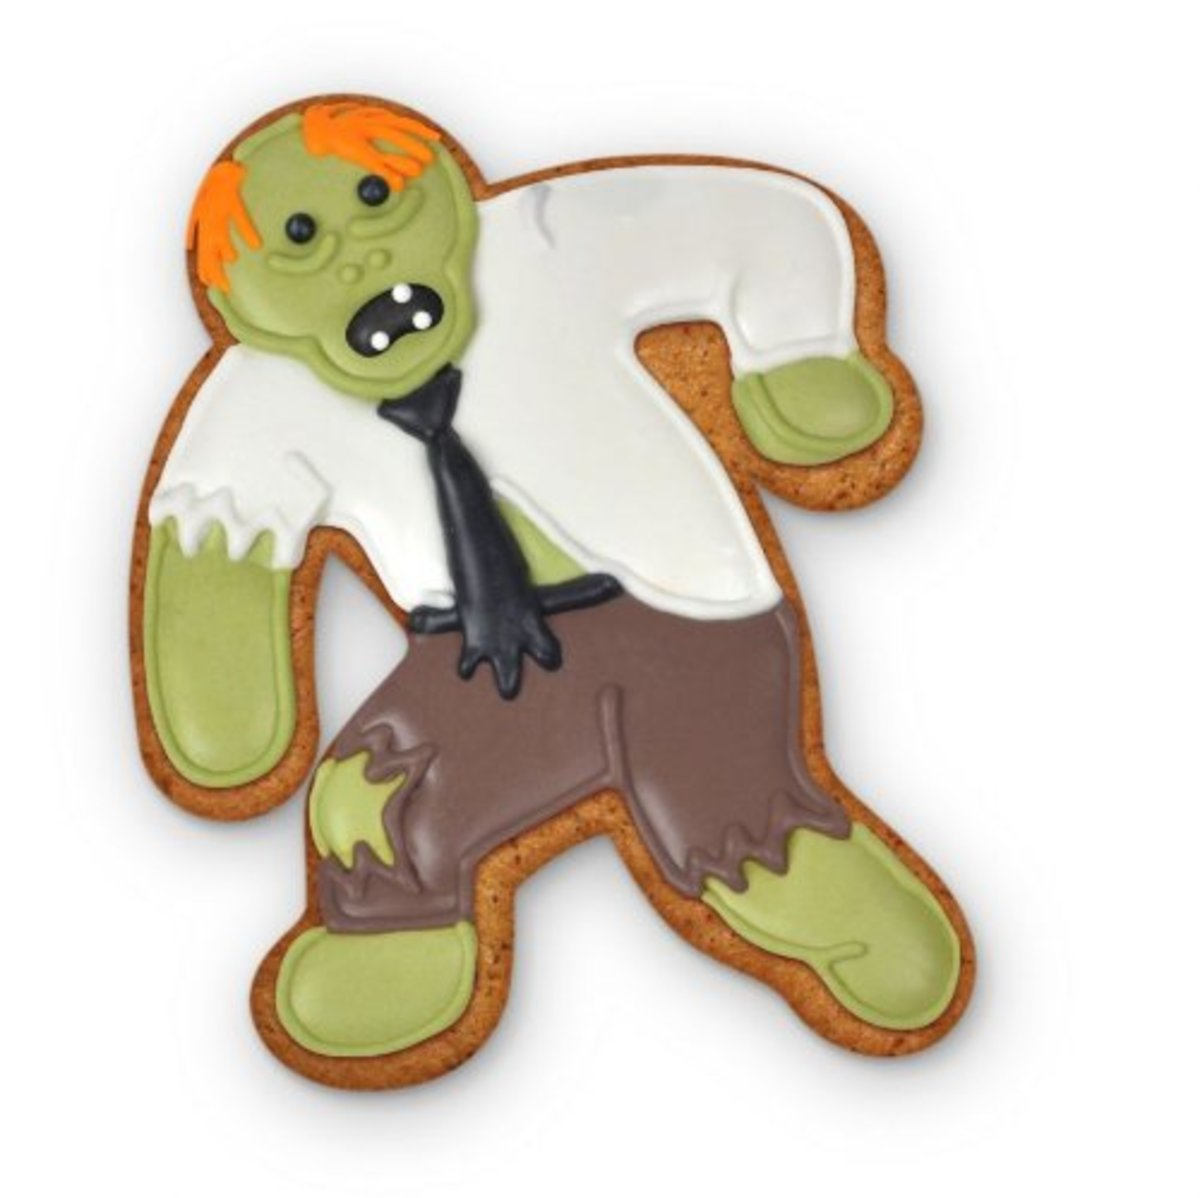 undead-fred-zombie-shaped-cookie-cutters-novelty-kitchen-bakeware